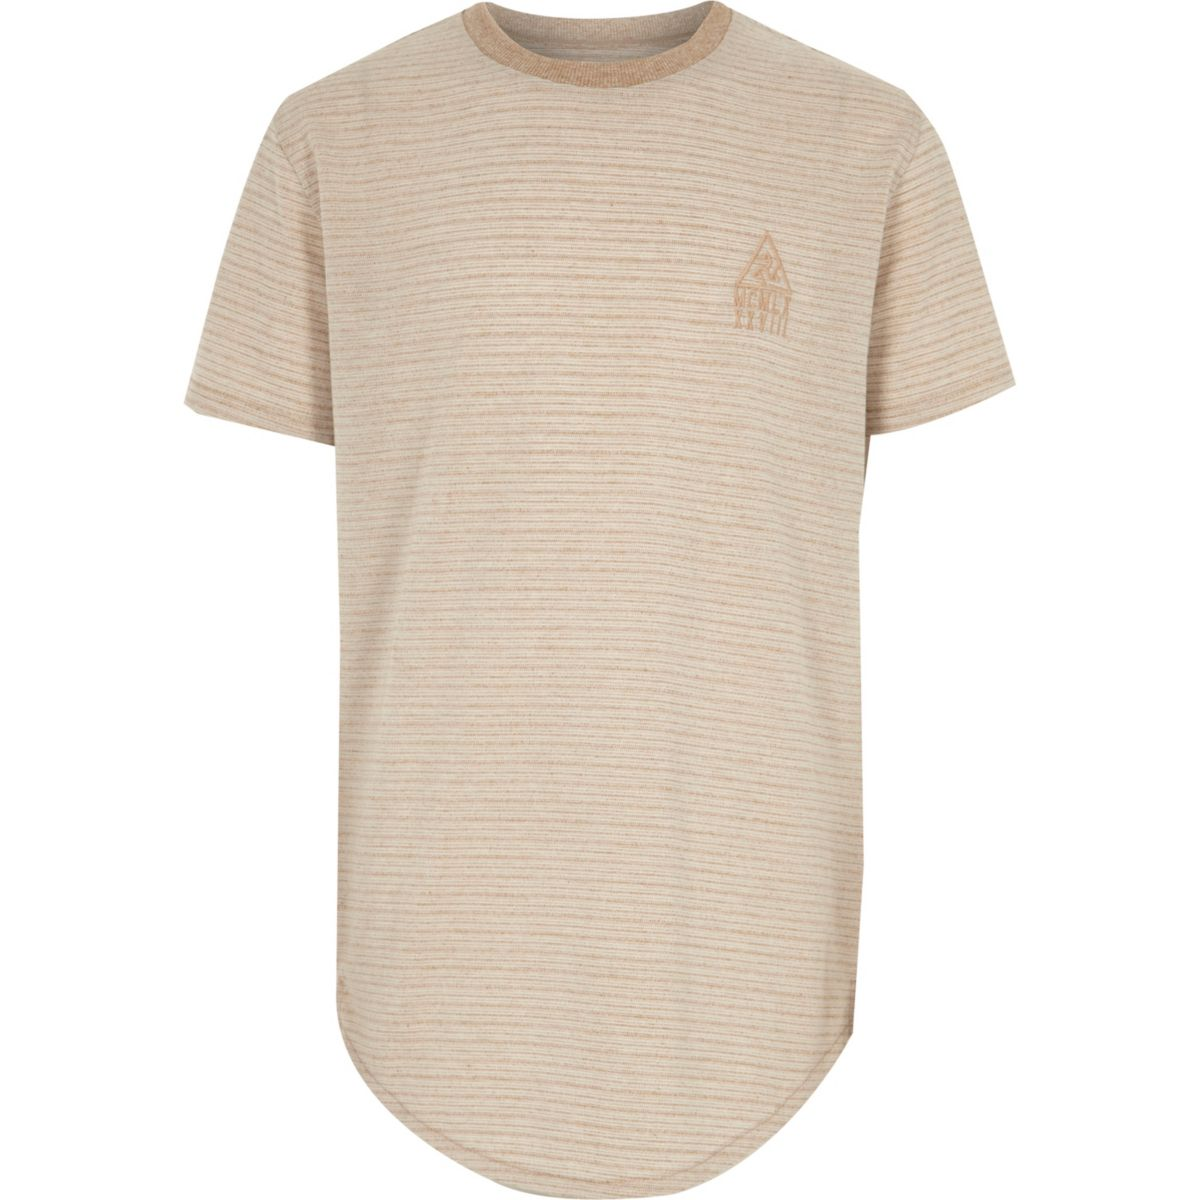 Boys stone embroidered short sleeve T-shirt